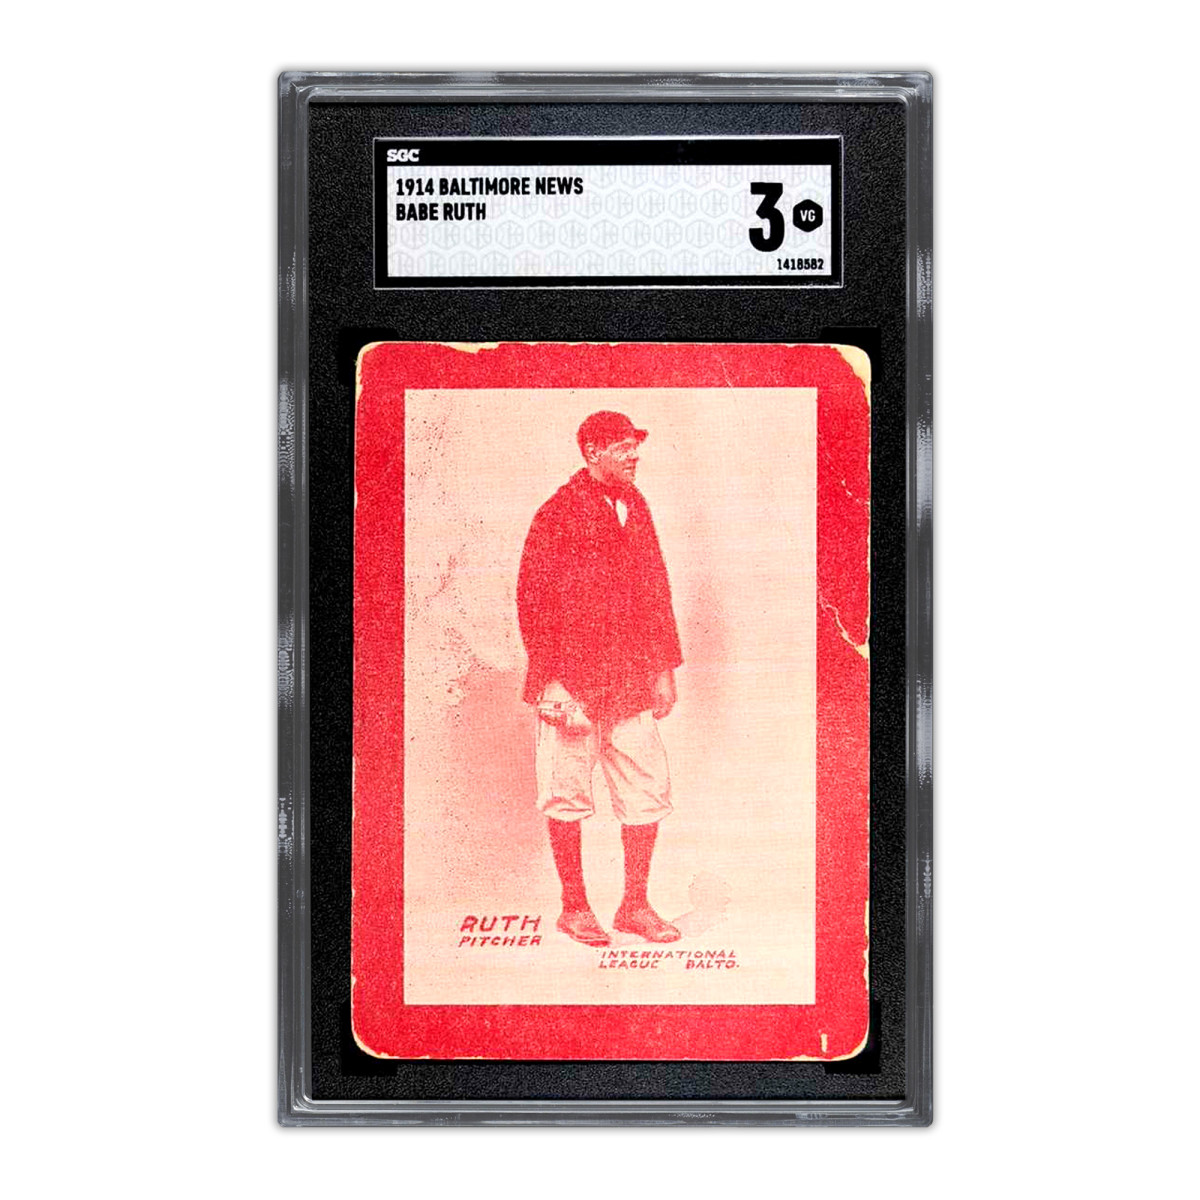 A 1914 Baltimore News Babe Ruth card is the highest-selling card in history and being offered to investors.